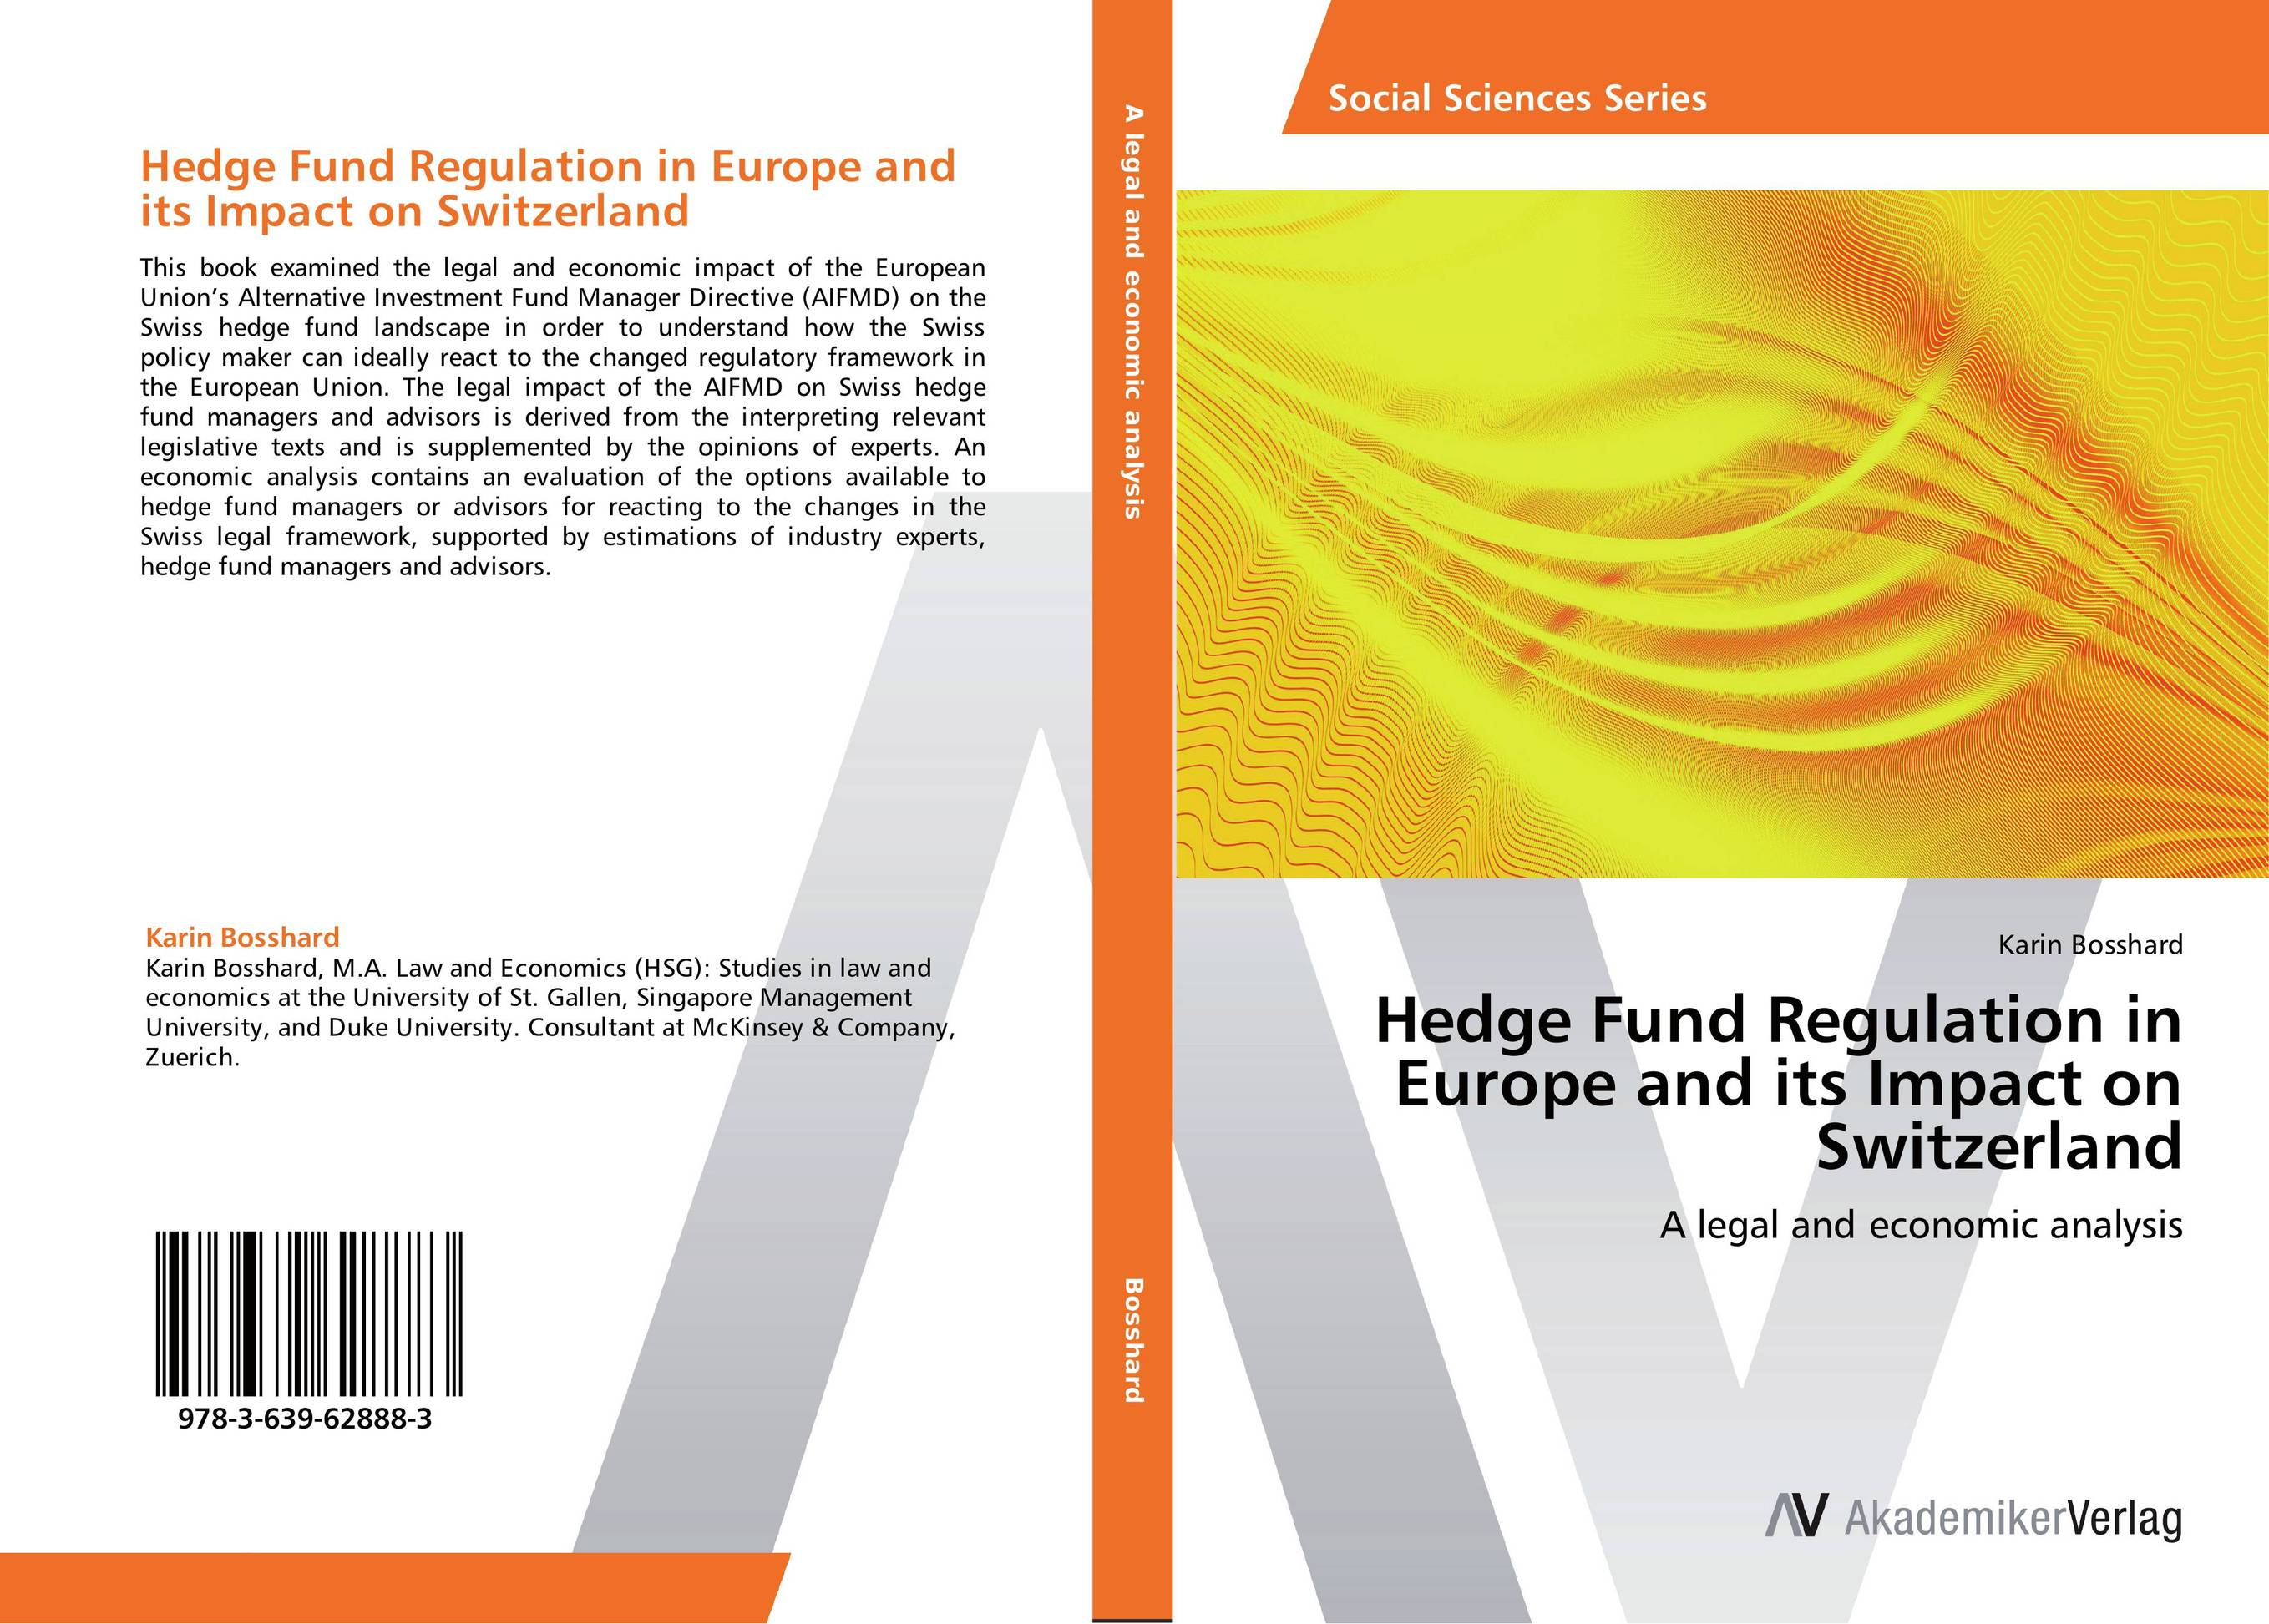 Hedge Fund Regulation in Europe and its Impact on Switzerland evaluation and legal theory